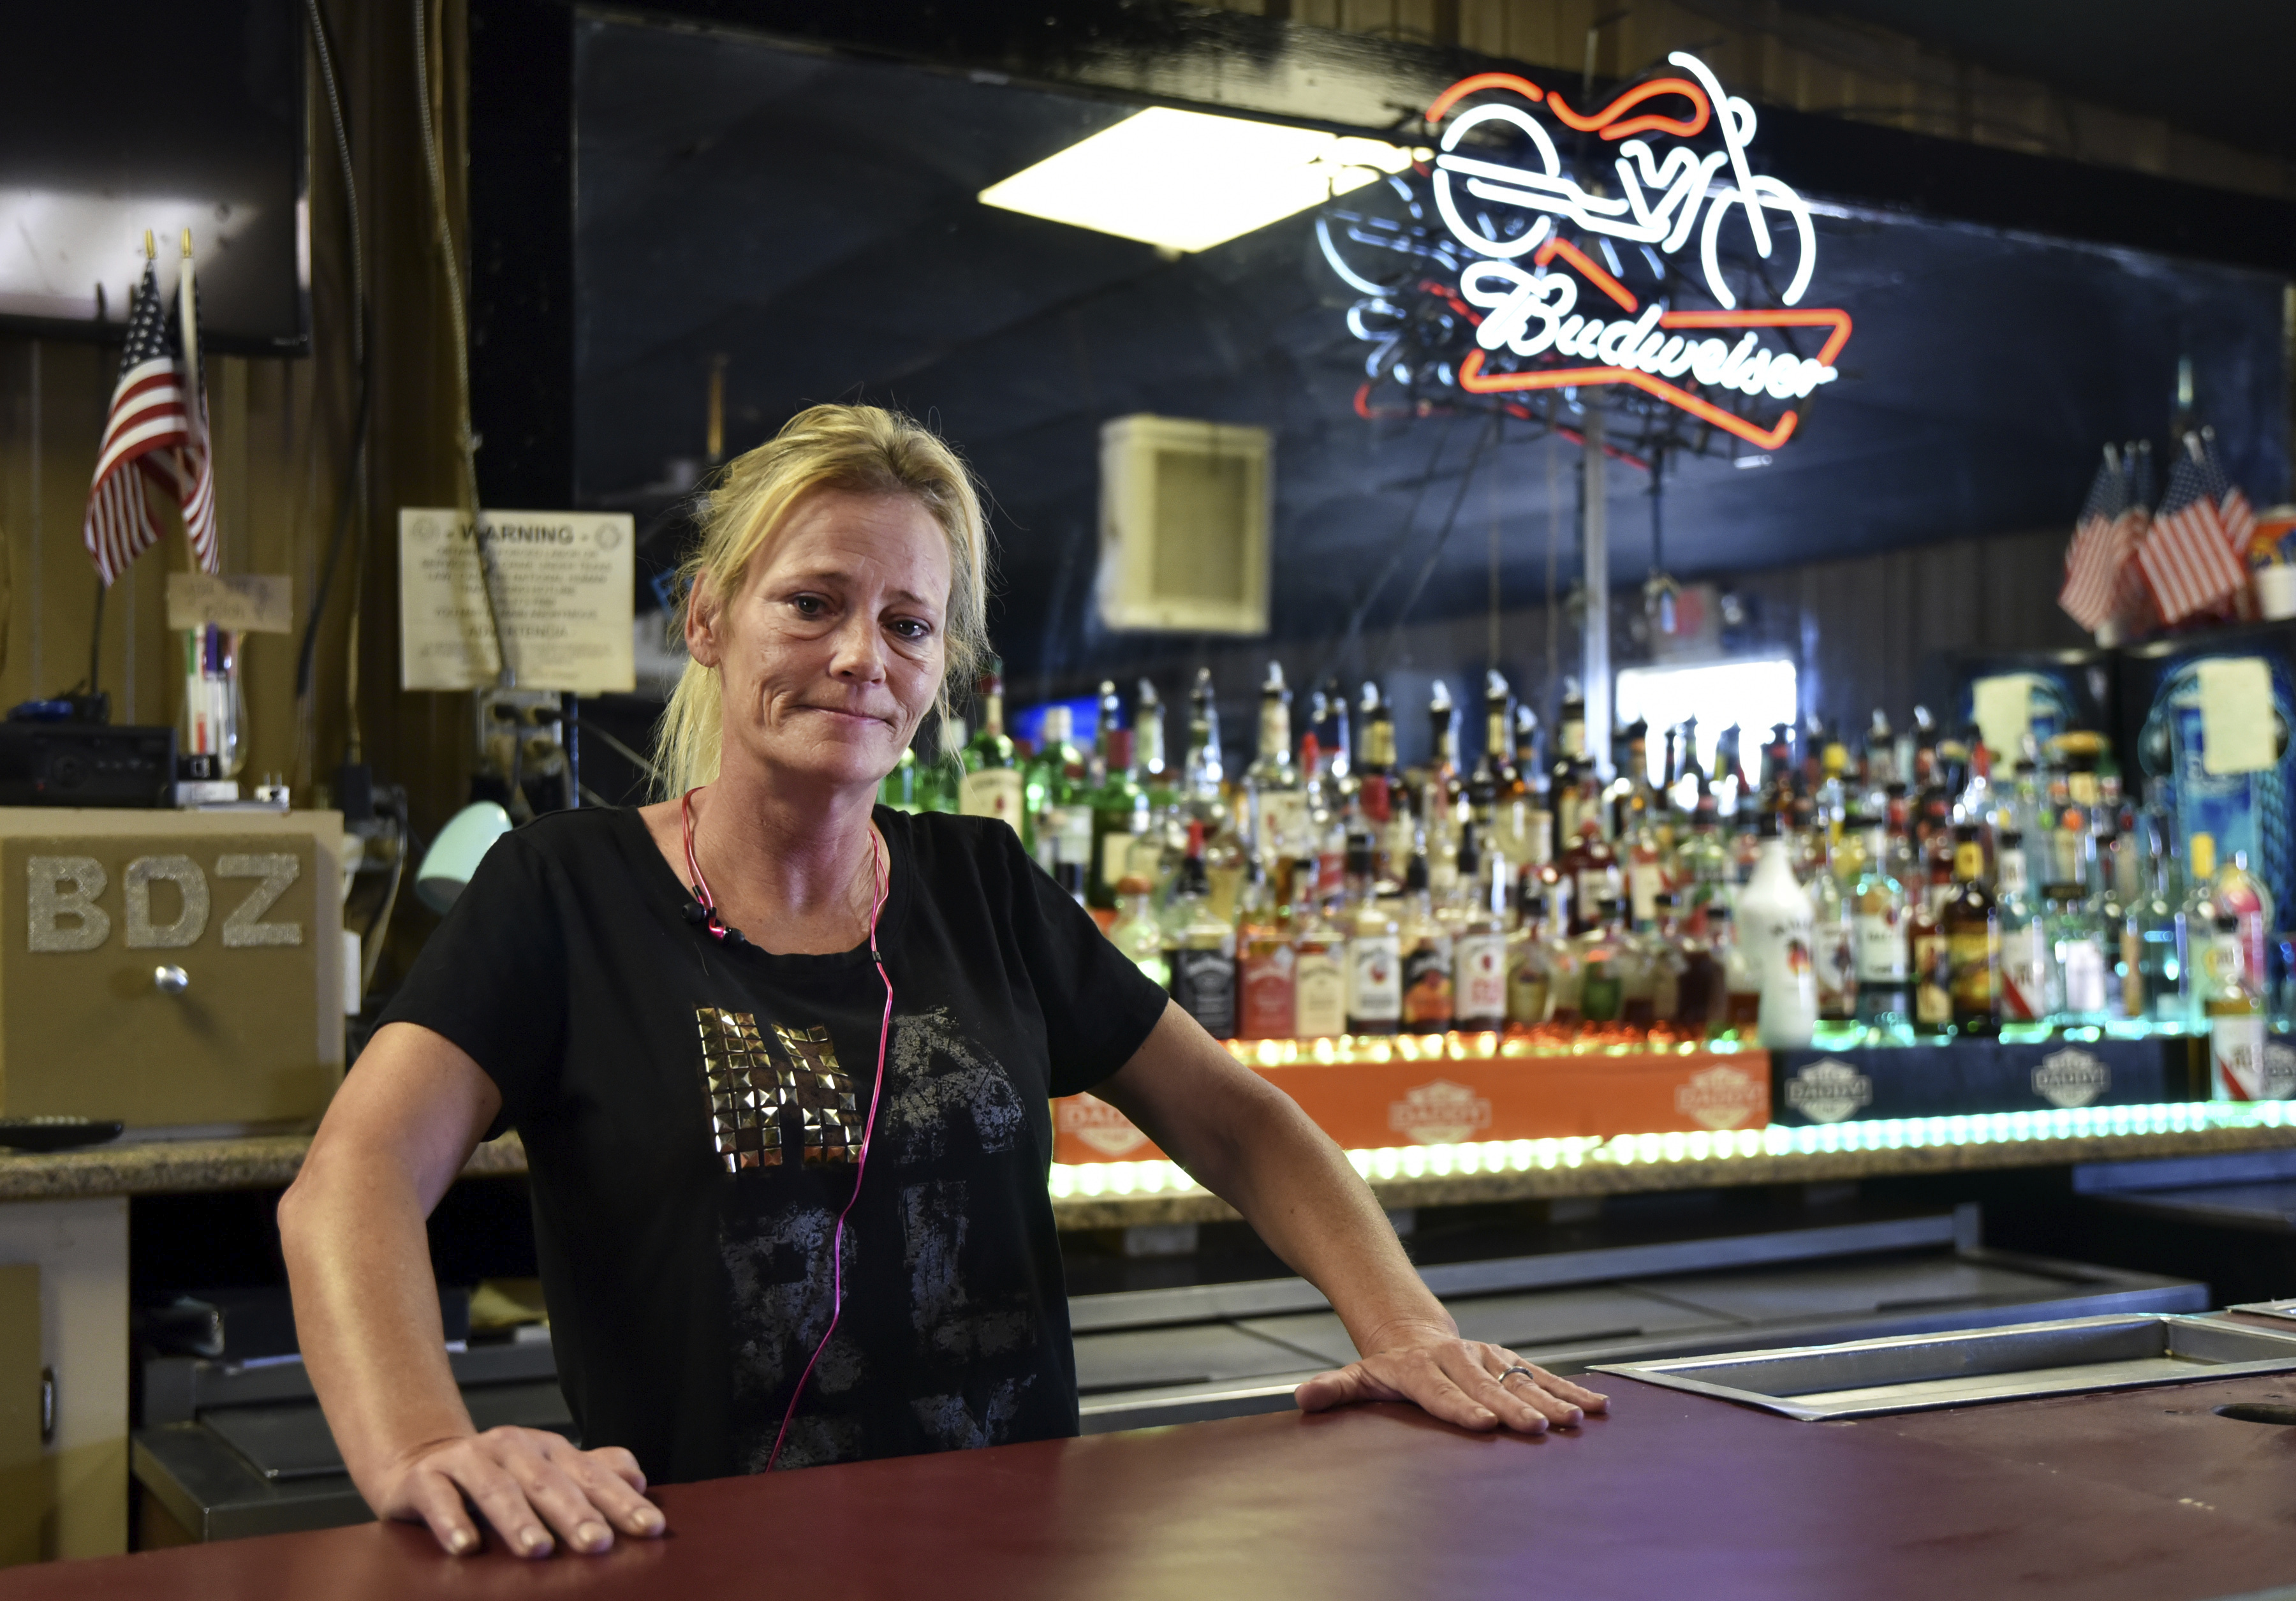 A Texas bar owner is fighting the state's shutdown: 'We are going to starve,' she says